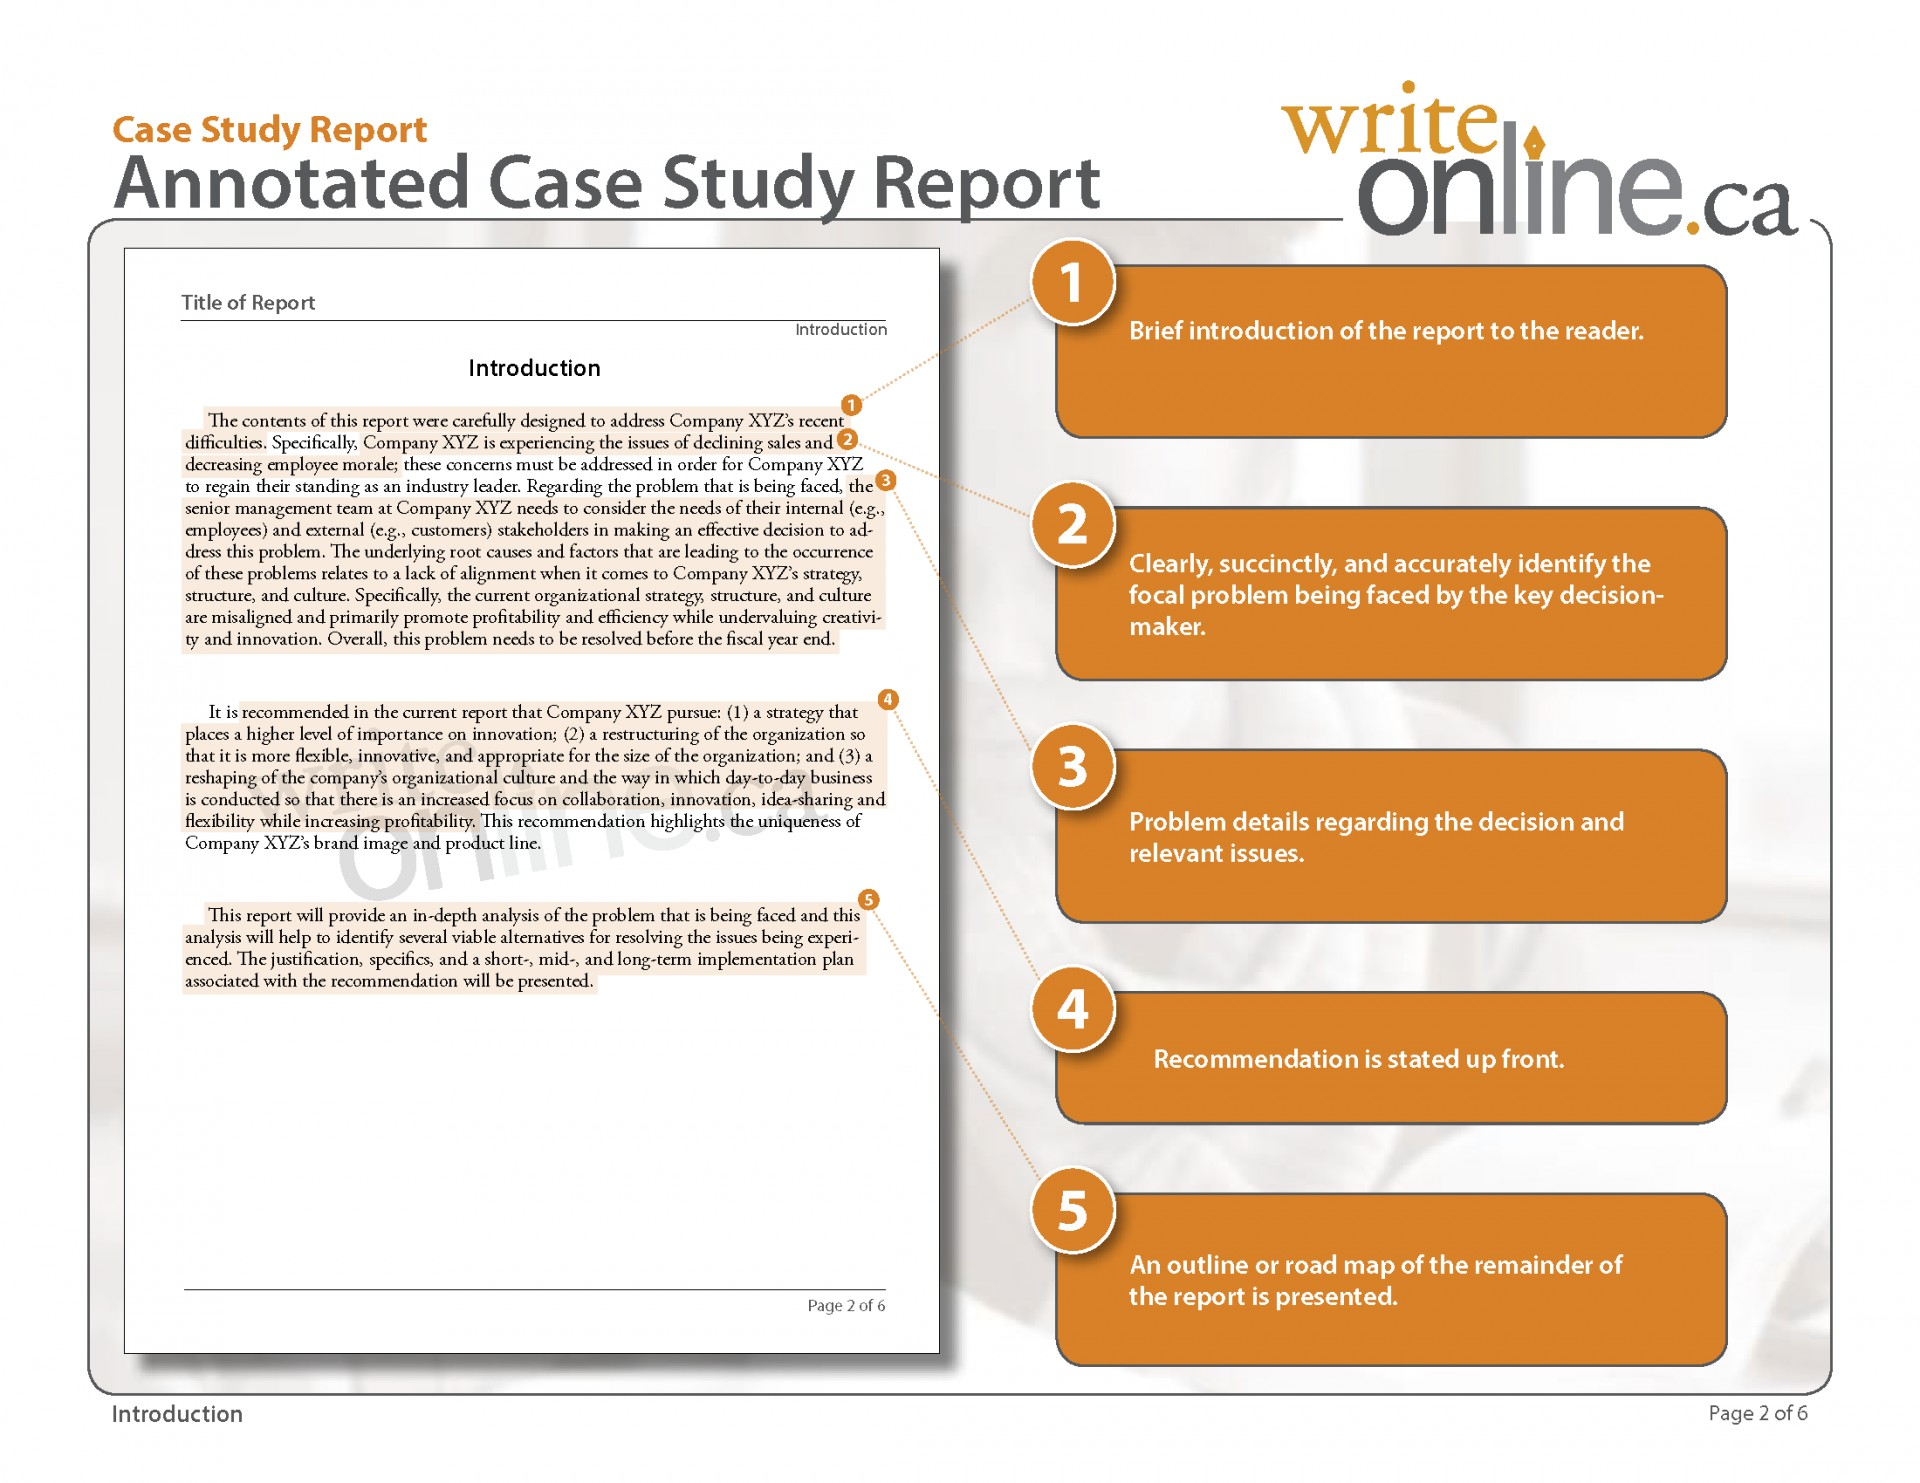 009 Research Paper Casestudy Annotatedfull Page 2 Component Of Archaicawful Pdf Parts Chapter Quantitative 1920